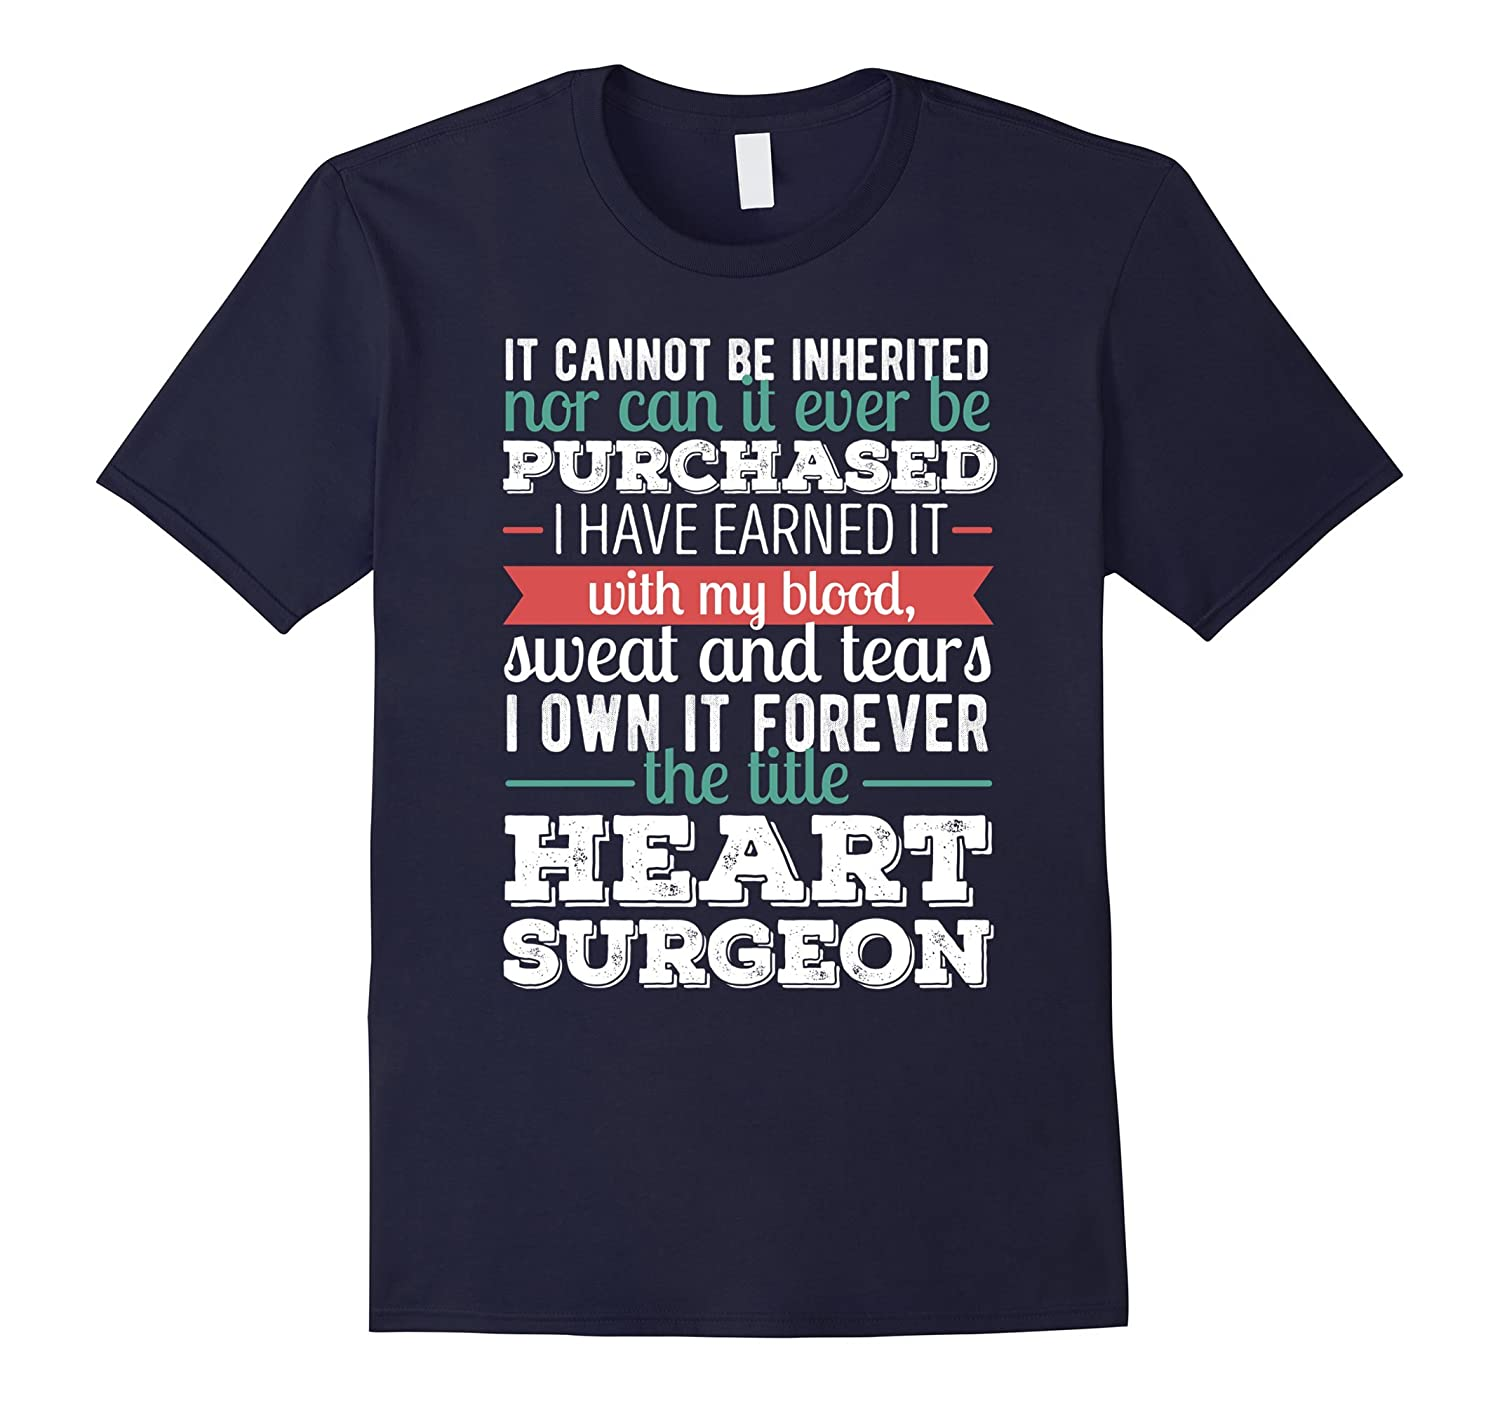 Heart Surgeon T-shirt - It cannot be inherited-TD